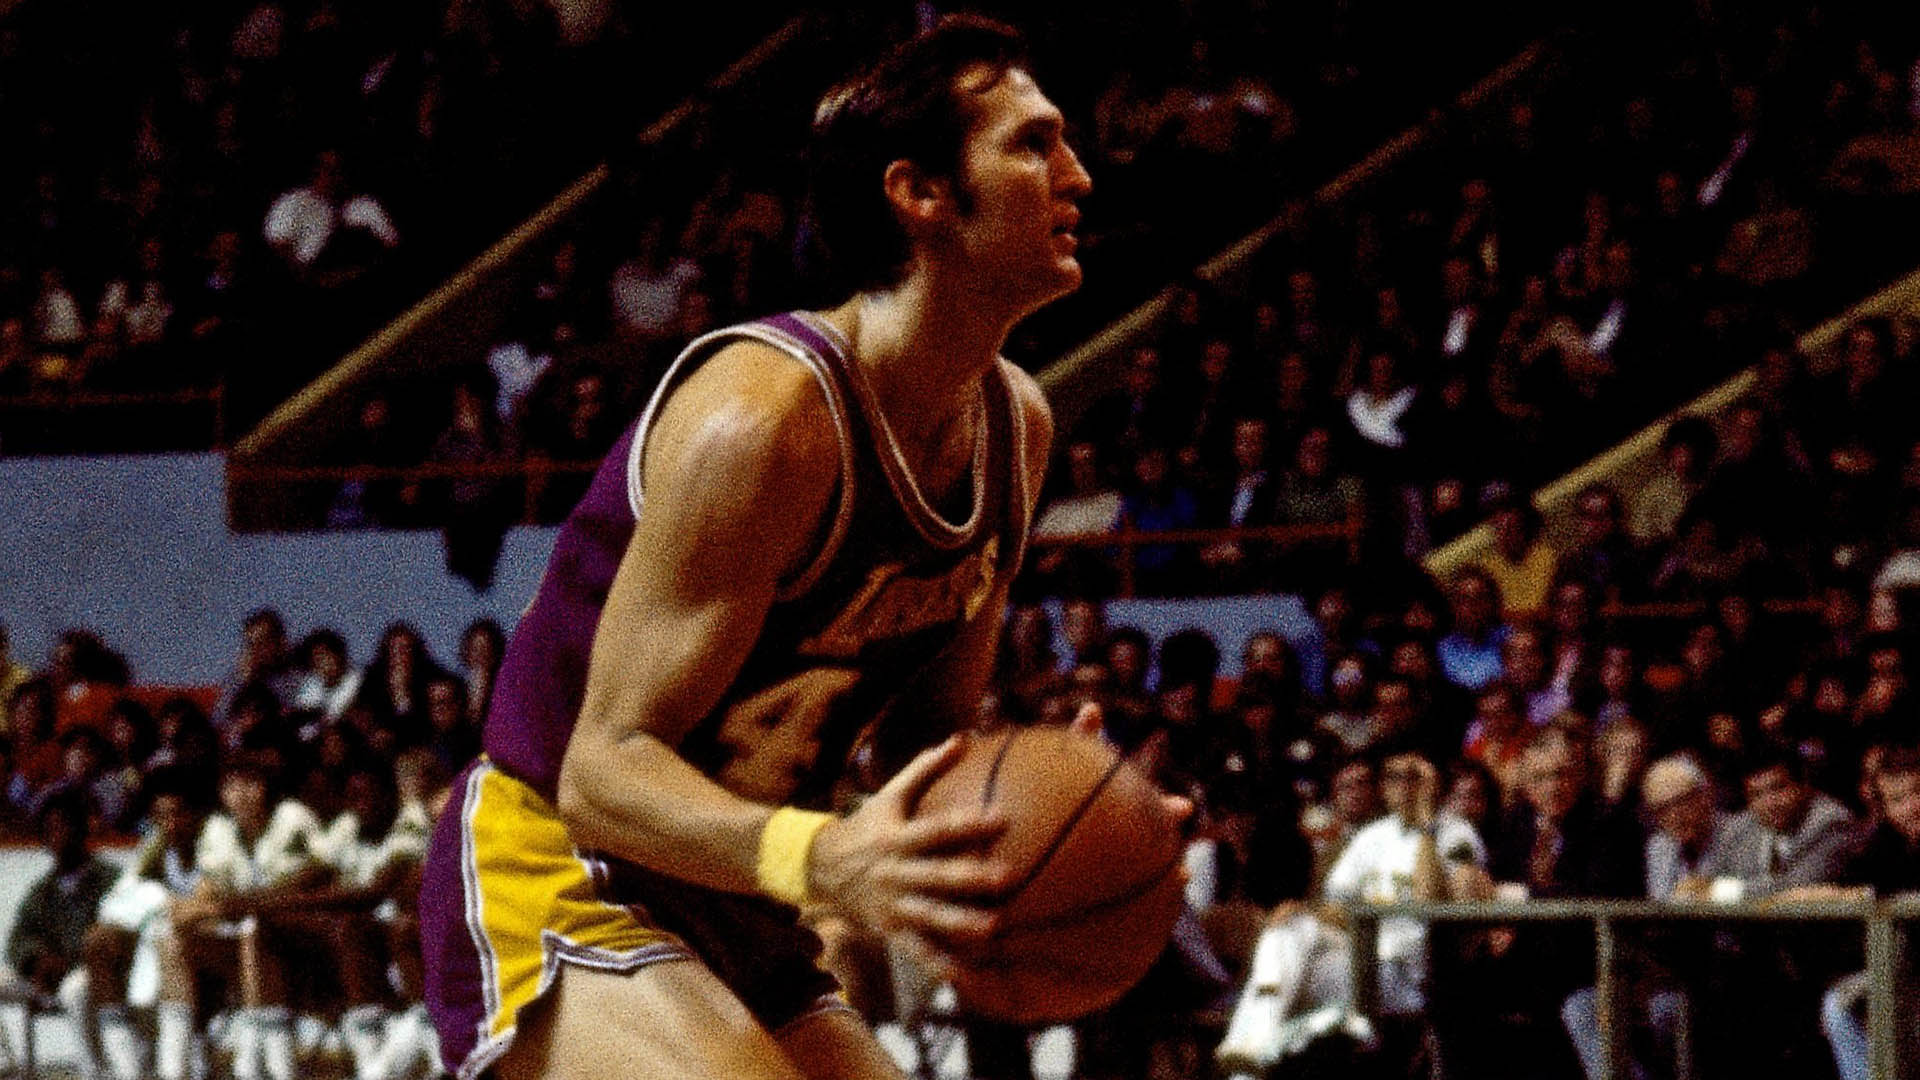 Top NBA Finals moments: Jerry West's buzzer-beater in 1970